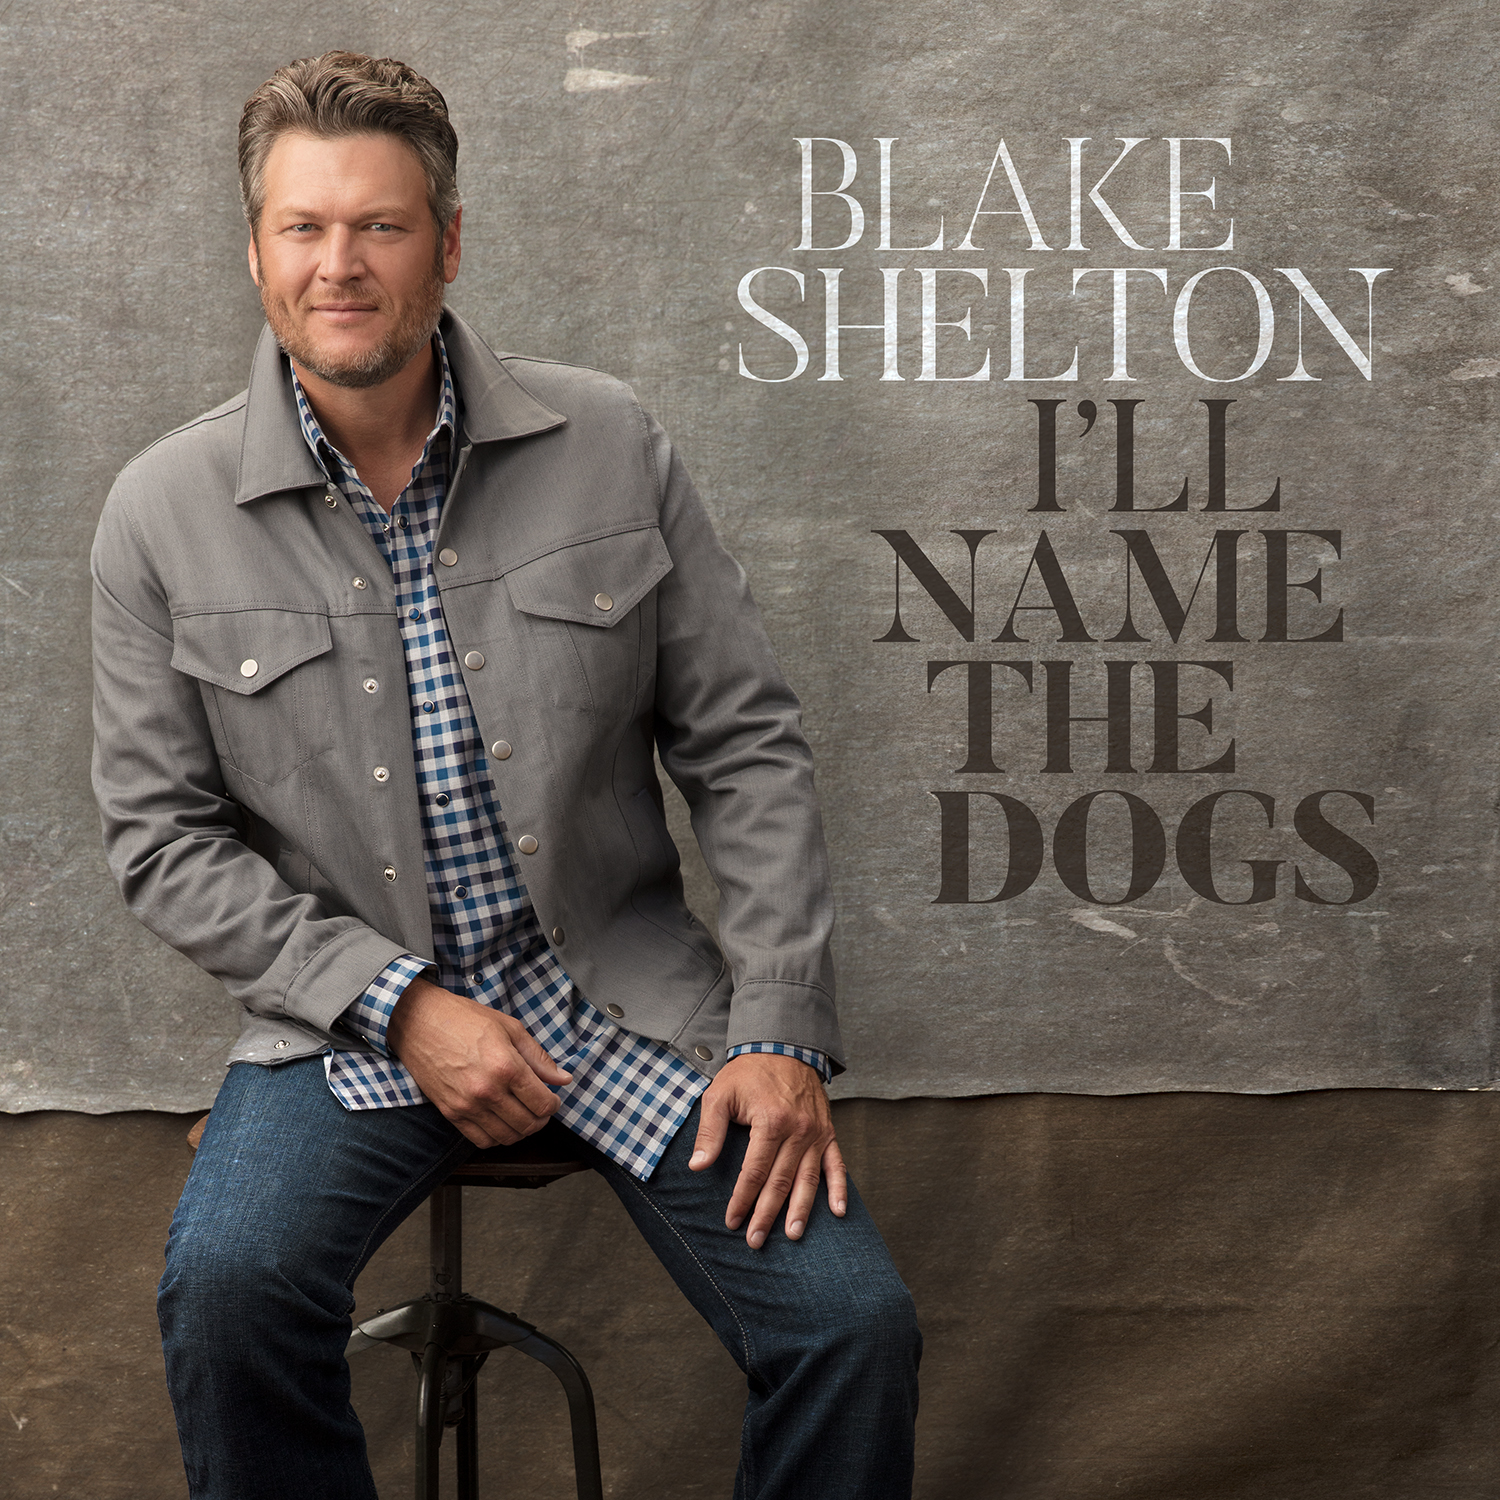 blake-shelton-ill-name-the-dogs